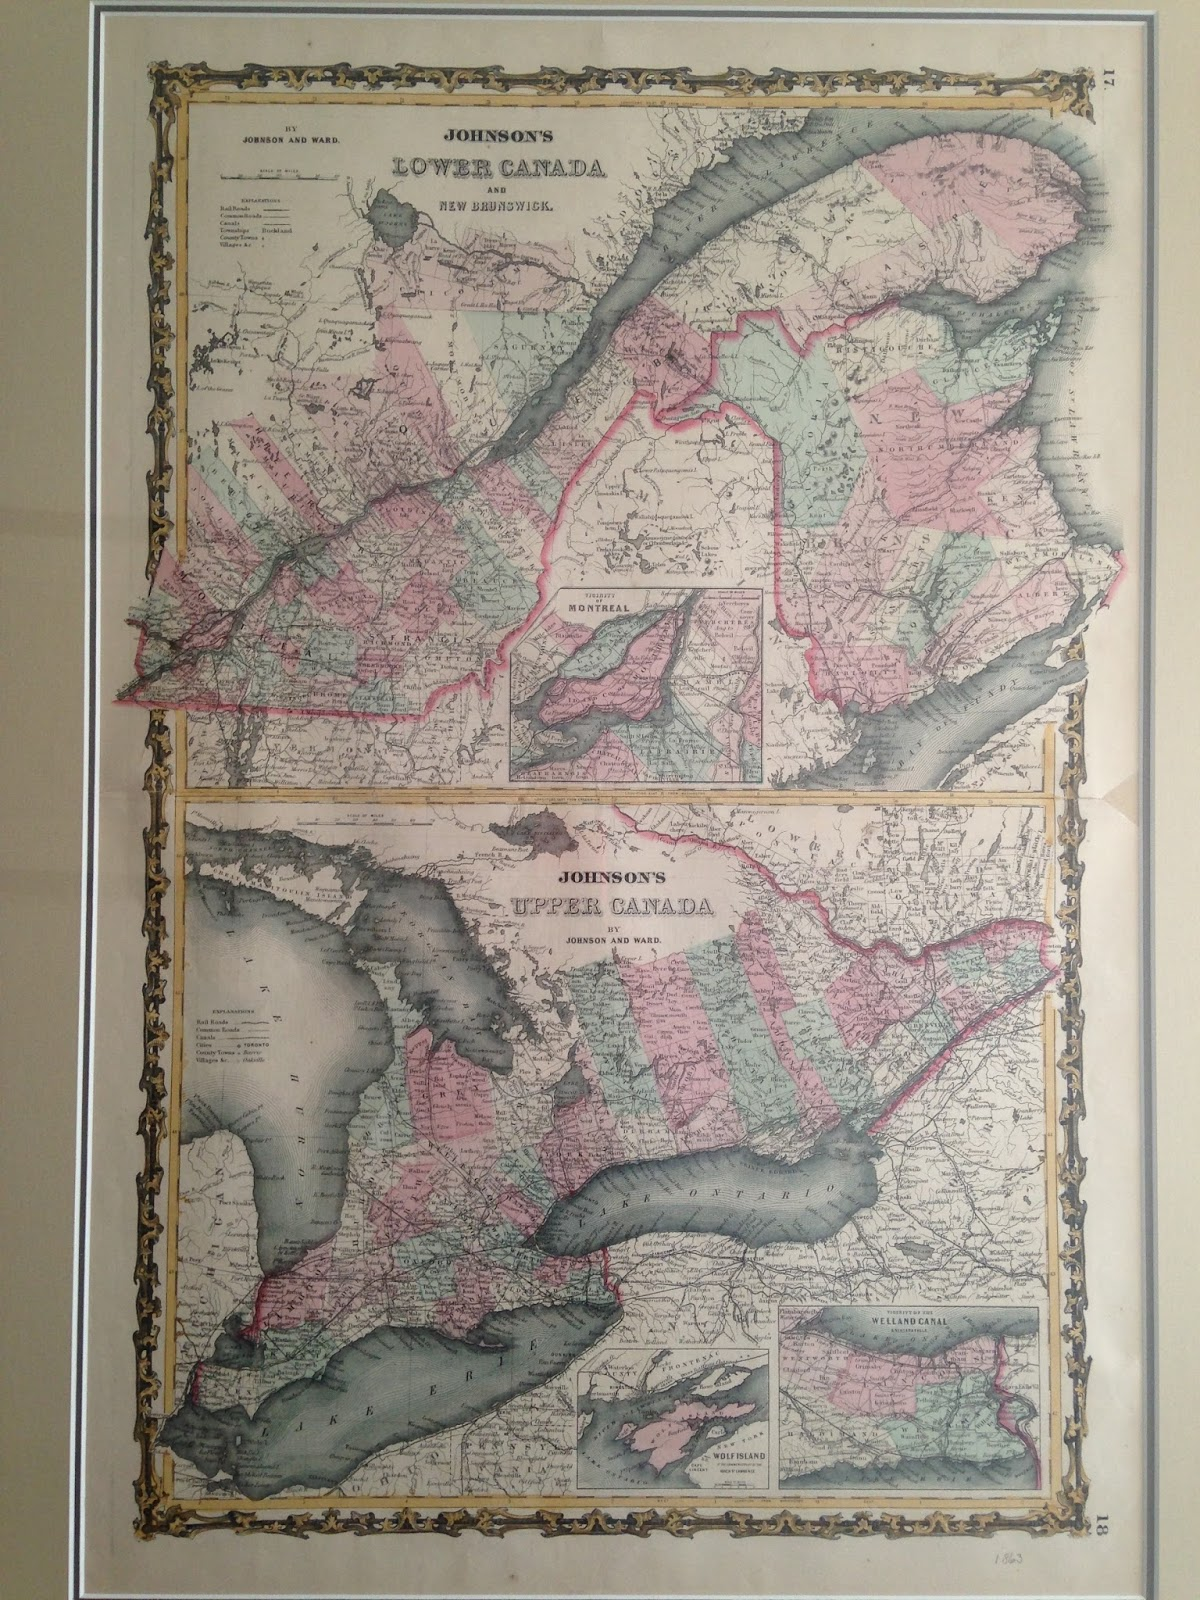 these two maps of upper and lower canada parts of modern ontario and quebec respectively as well as new brunswick and bits of the united states